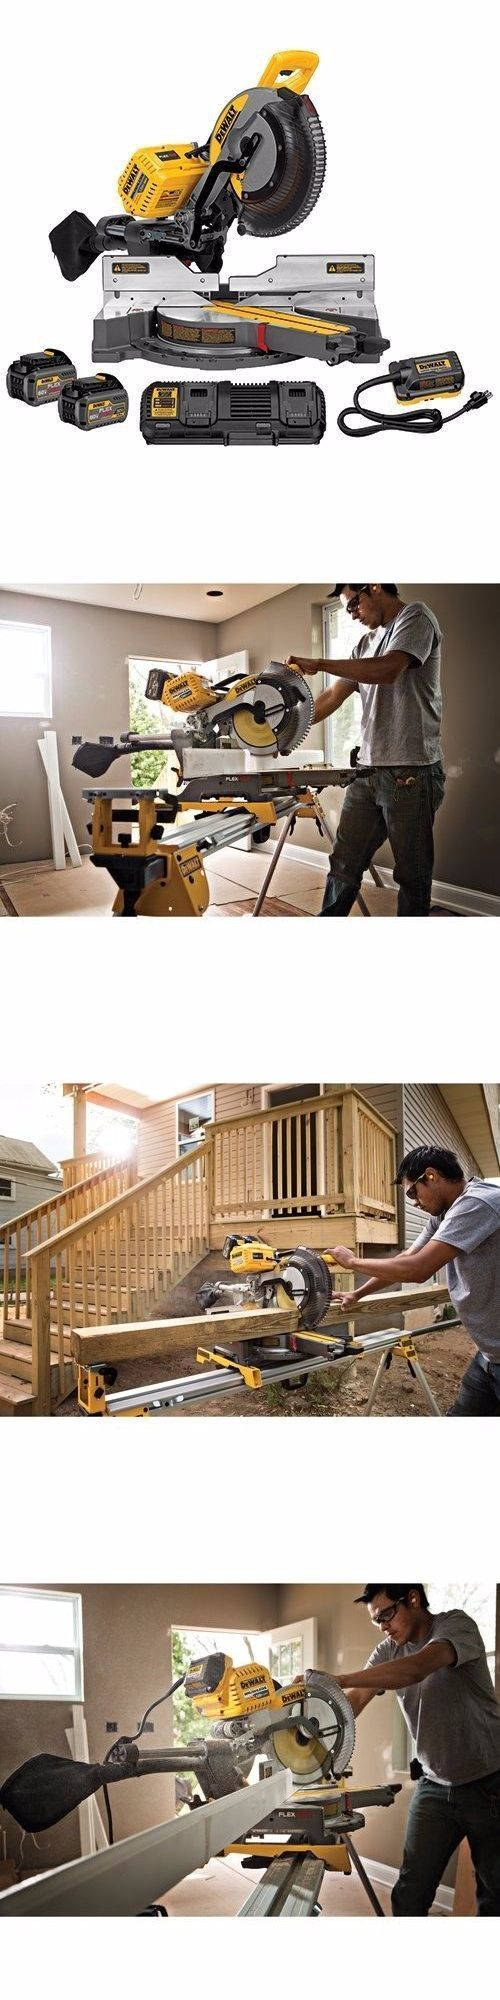 "Other Power Saws and Blades 122838: Dewalt Dhs790at2 Flexvolt 120V Max 12"" Double Bevel Sliding Miter Saw Kit -> BUY IT NOW ONLY: $850 on eBay!"